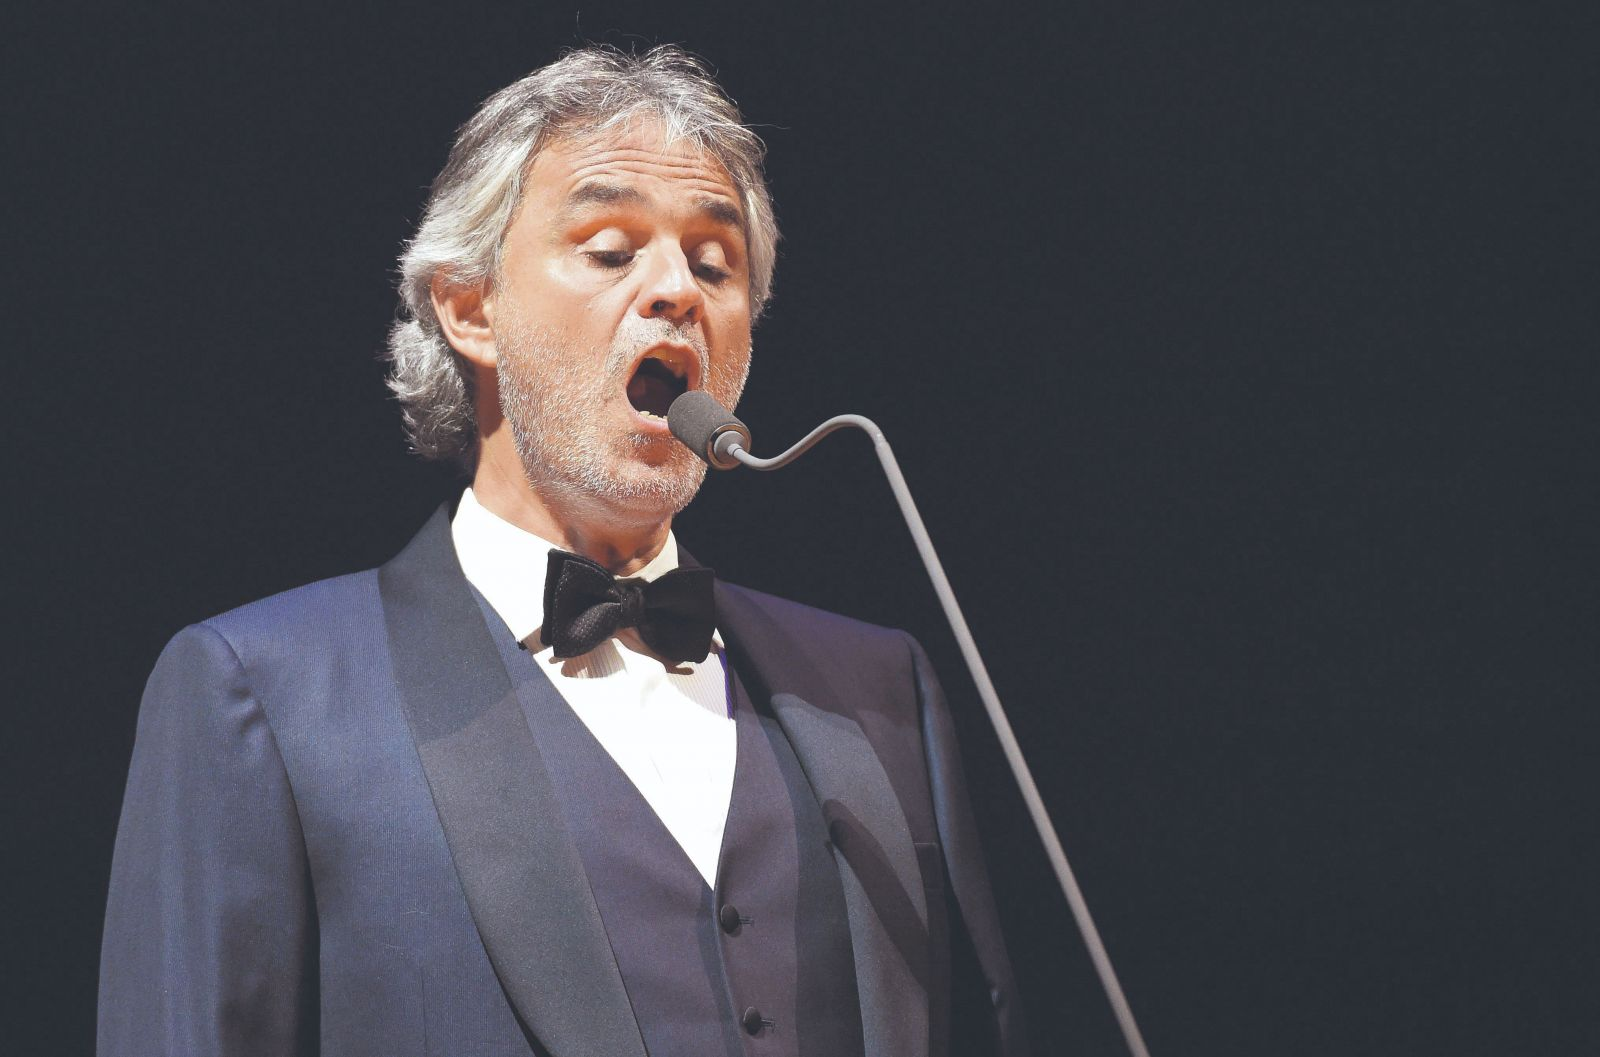 andrea bocelli tenor concierto youtube